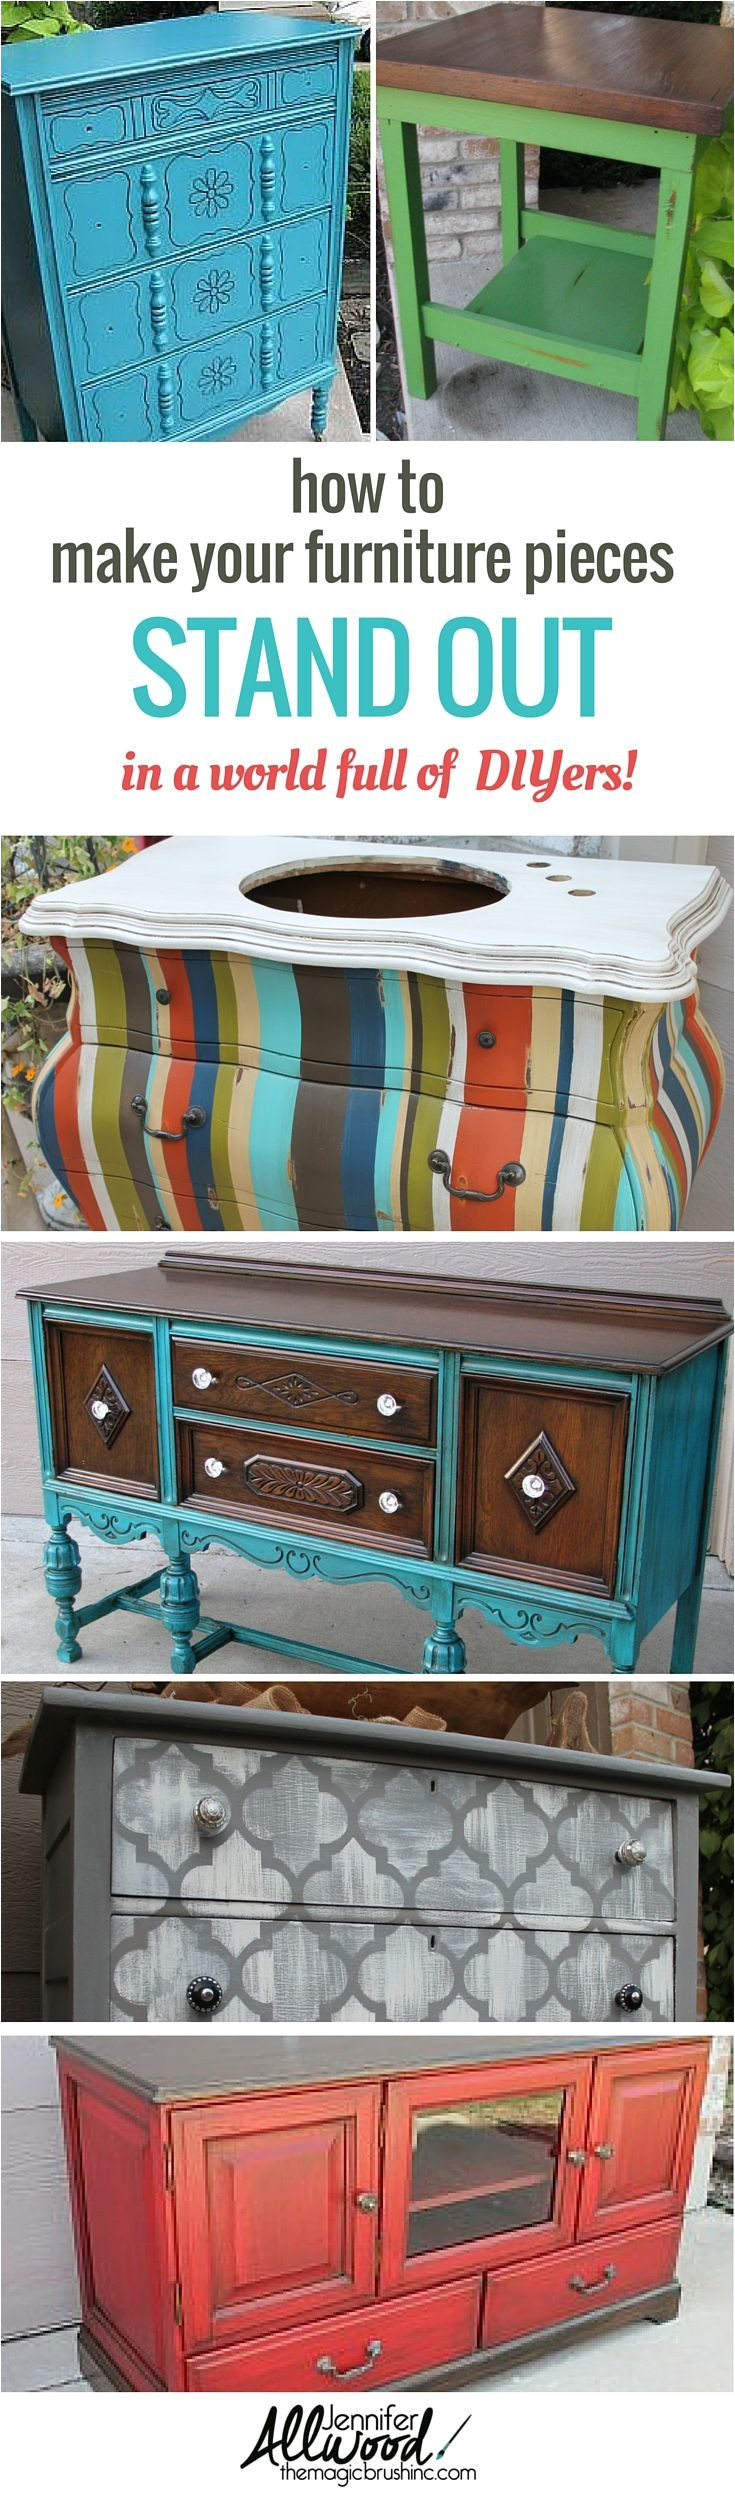 i can help you make more money selling painted furniture in a world of diyers